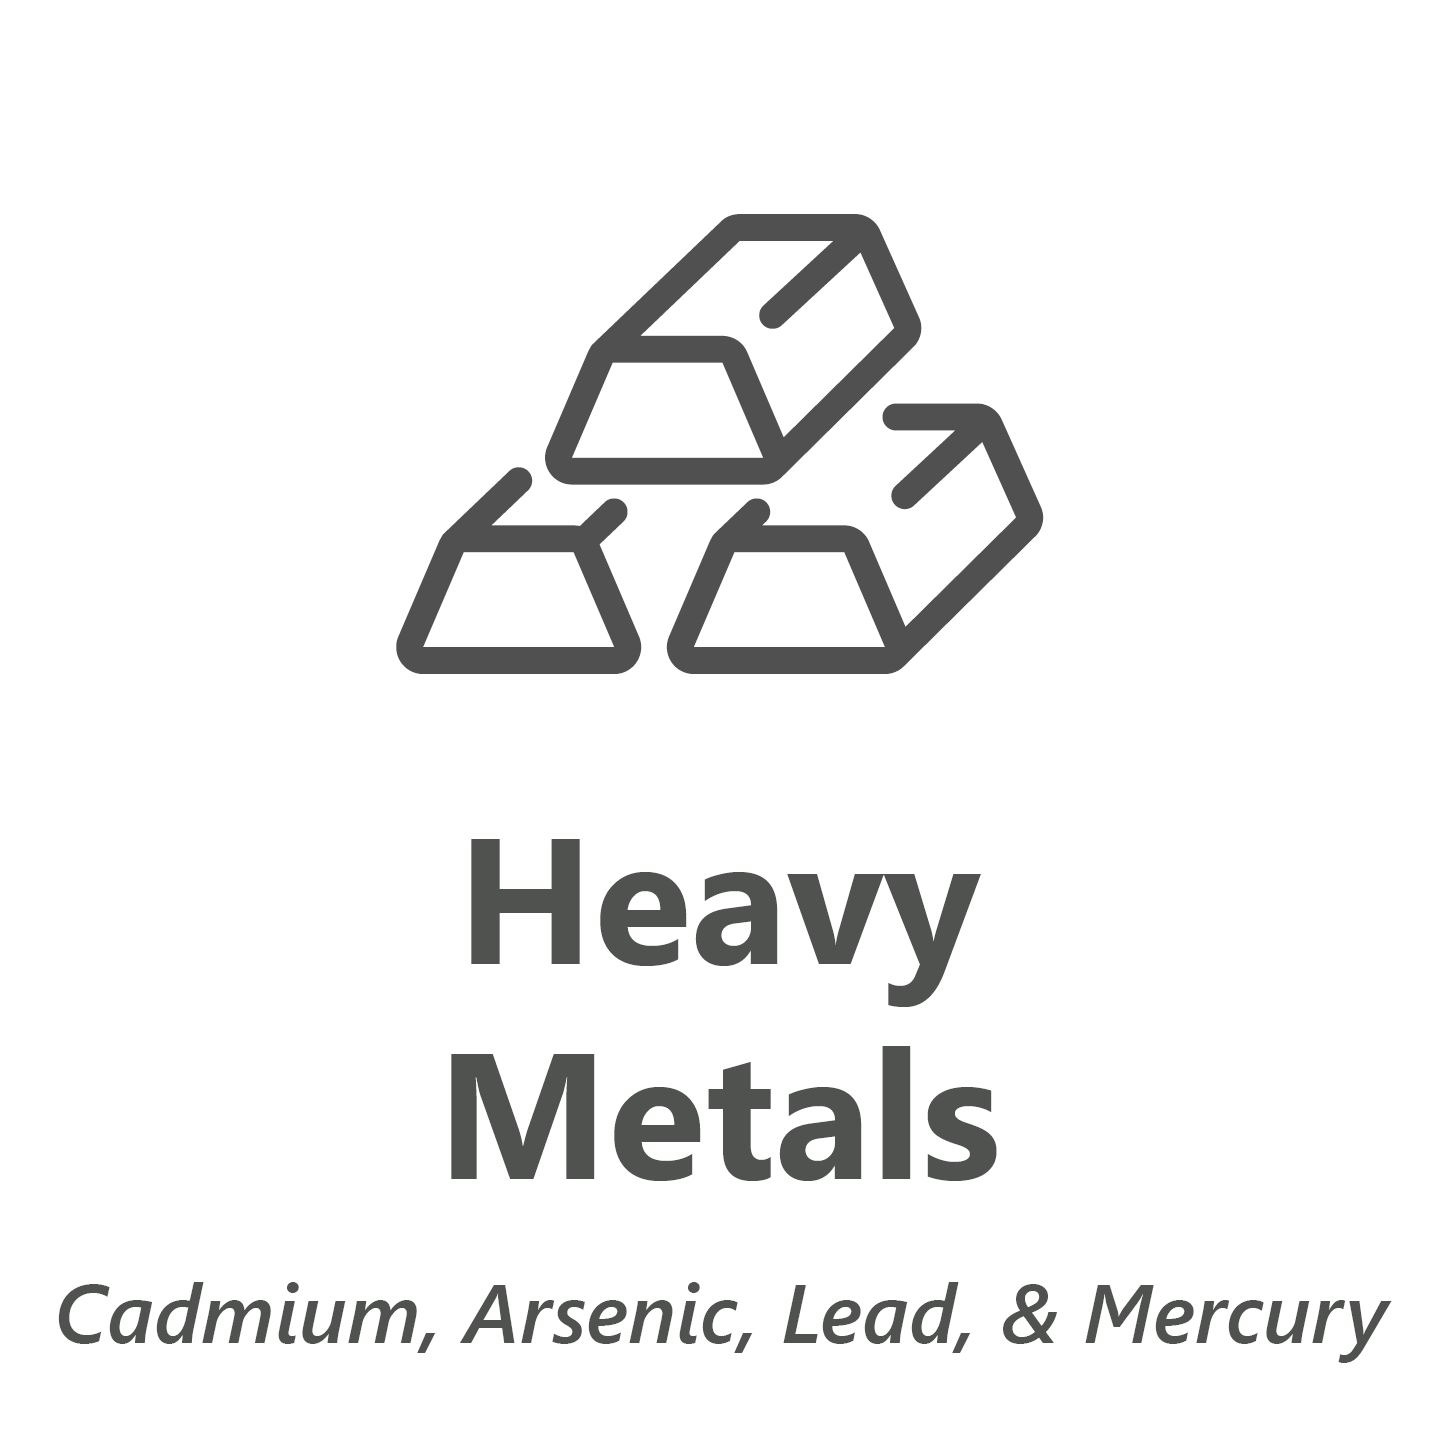 Web store icon for Heavy Metals chemistry test.